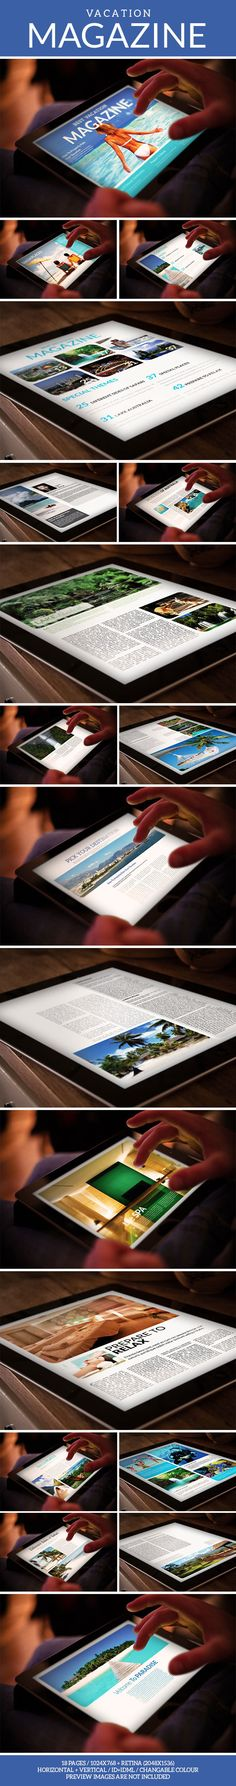 Tablet Vacation Magazine Template by Milos Djurovic, via Behance